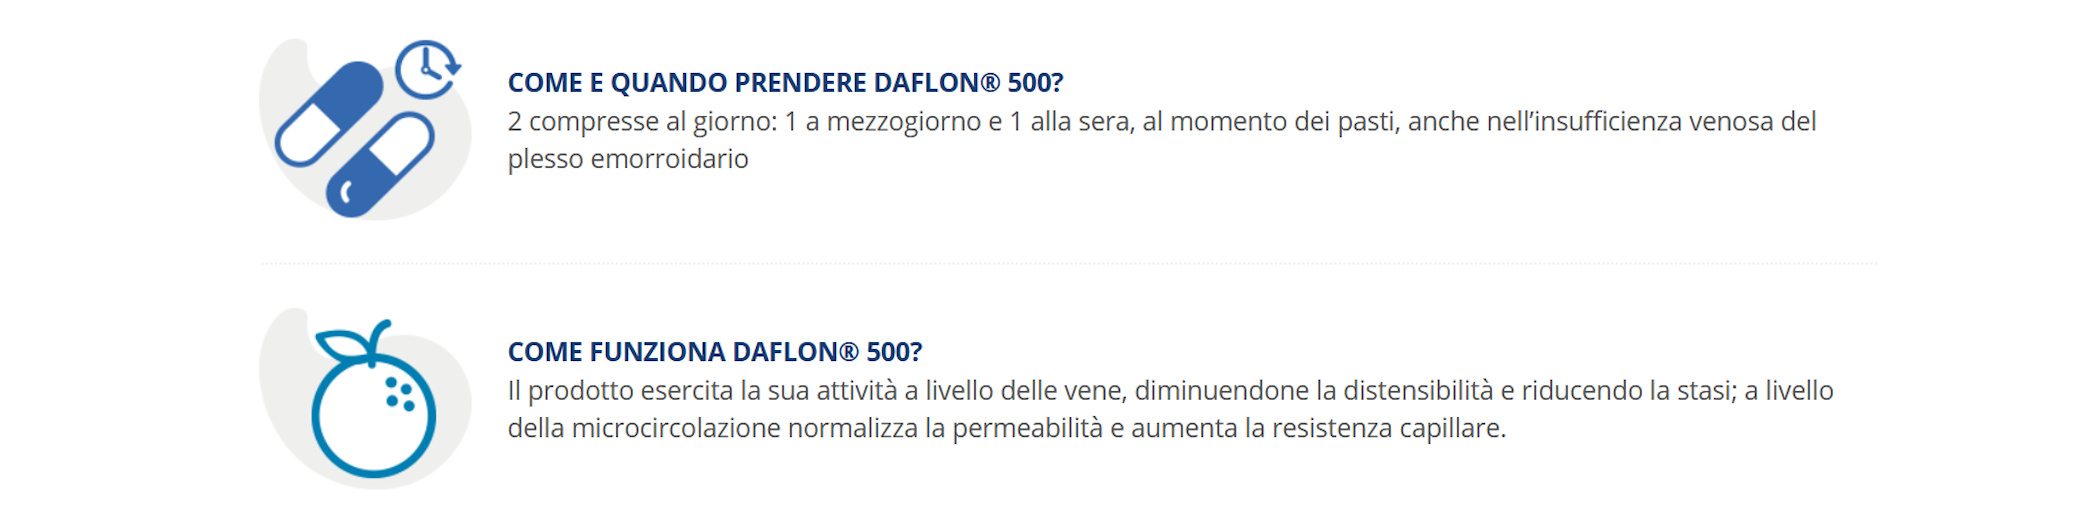 daflon-messina-farmacie